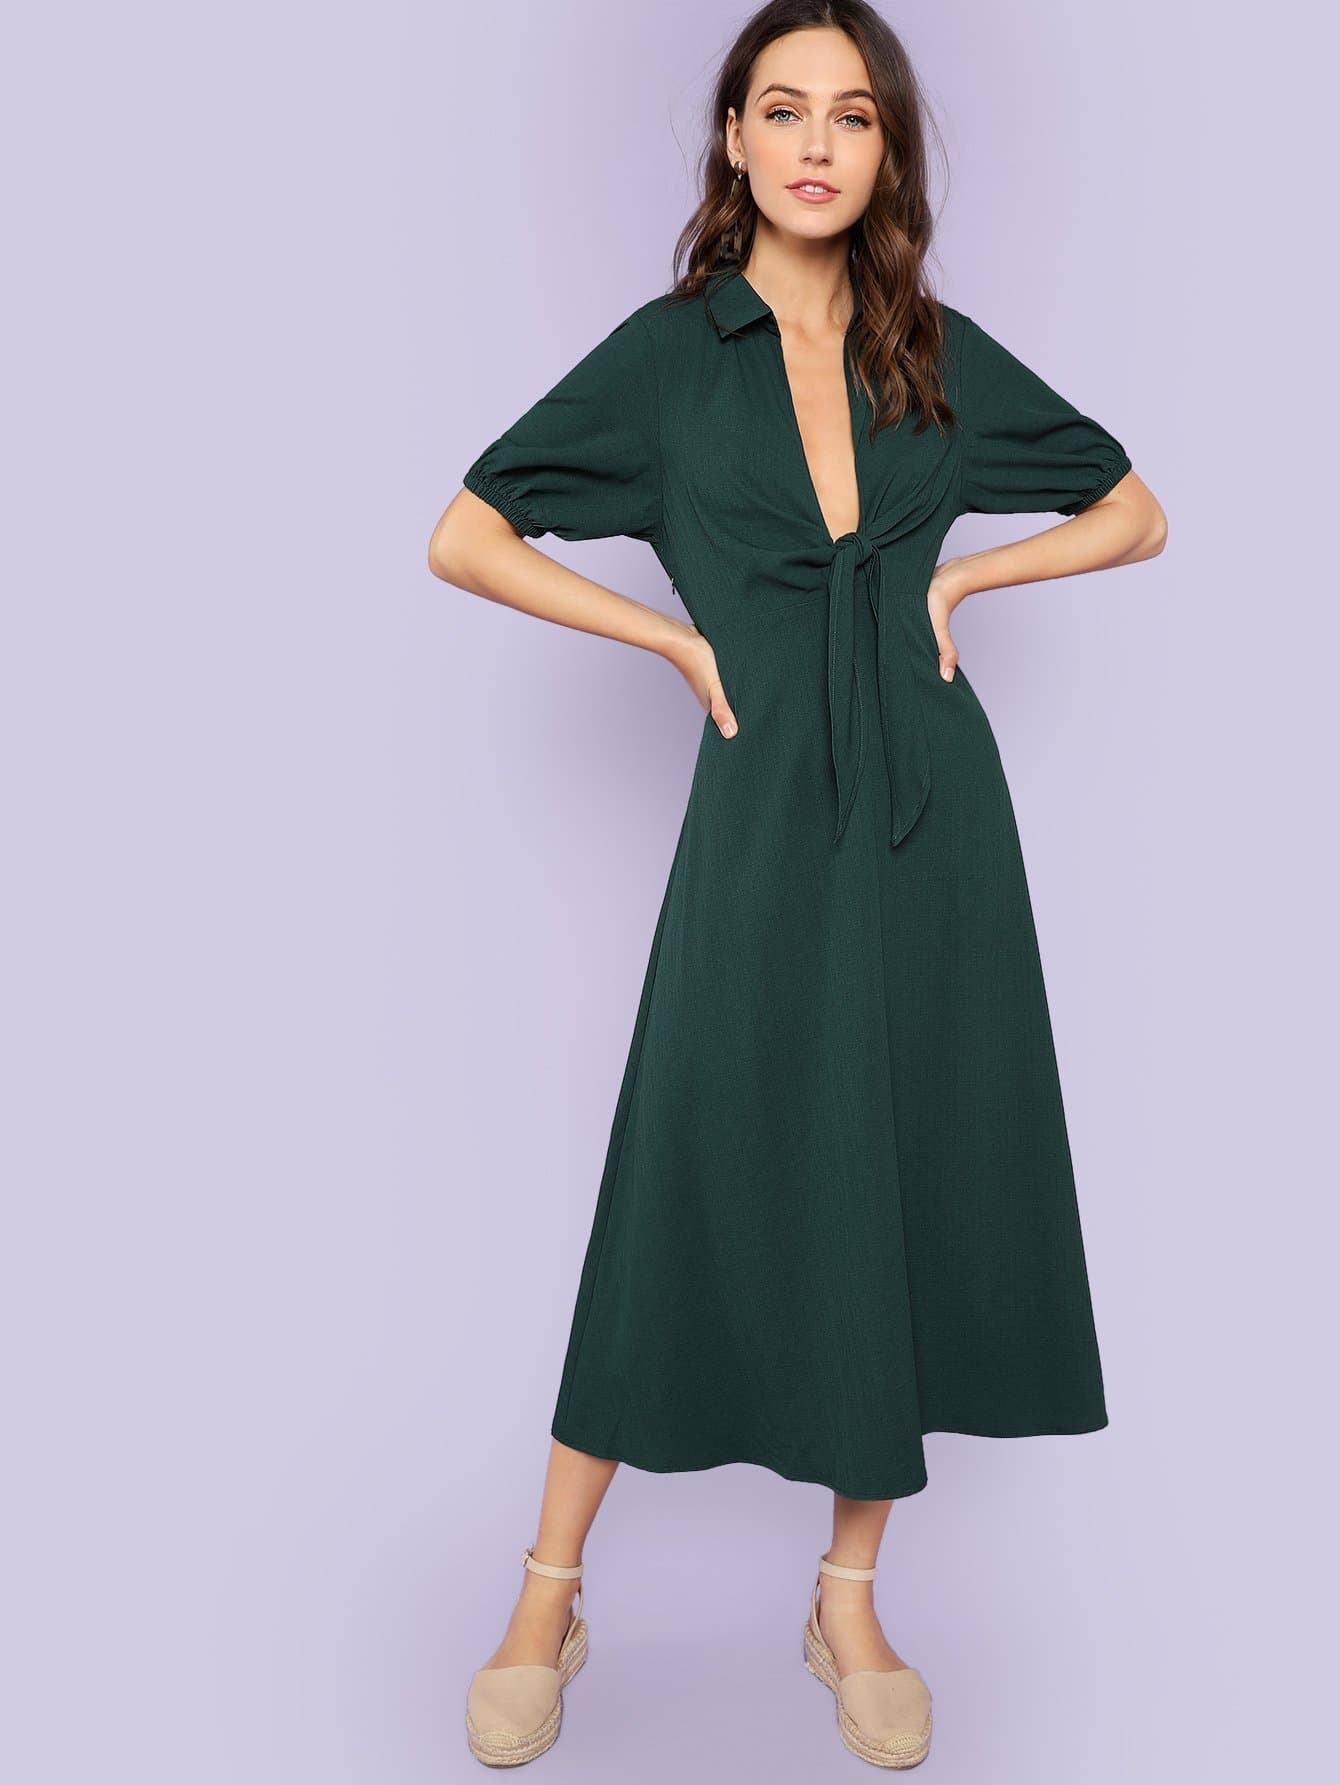 Elastic Cuff Knot Plunging Neck Dress plunging neck knot back floral dress